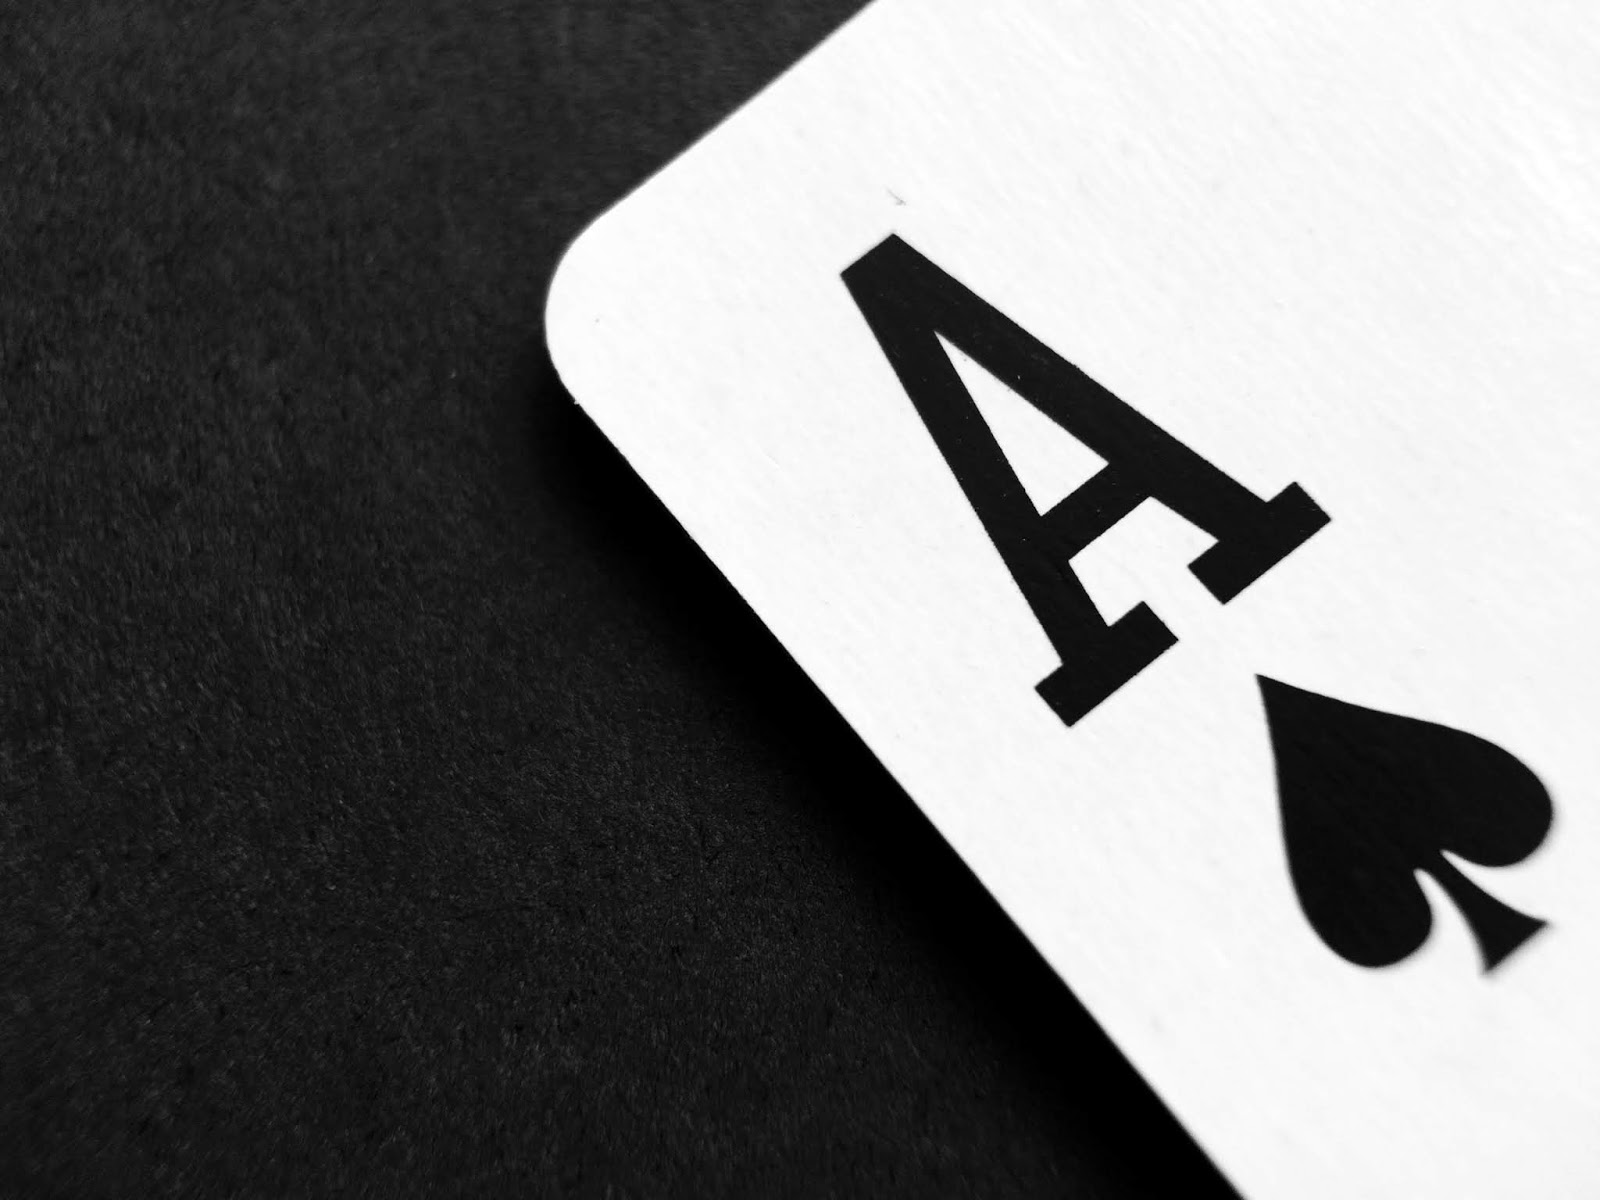 Free download, the ace of spades photography. In black and white. An ace in the hole gambling photograph.